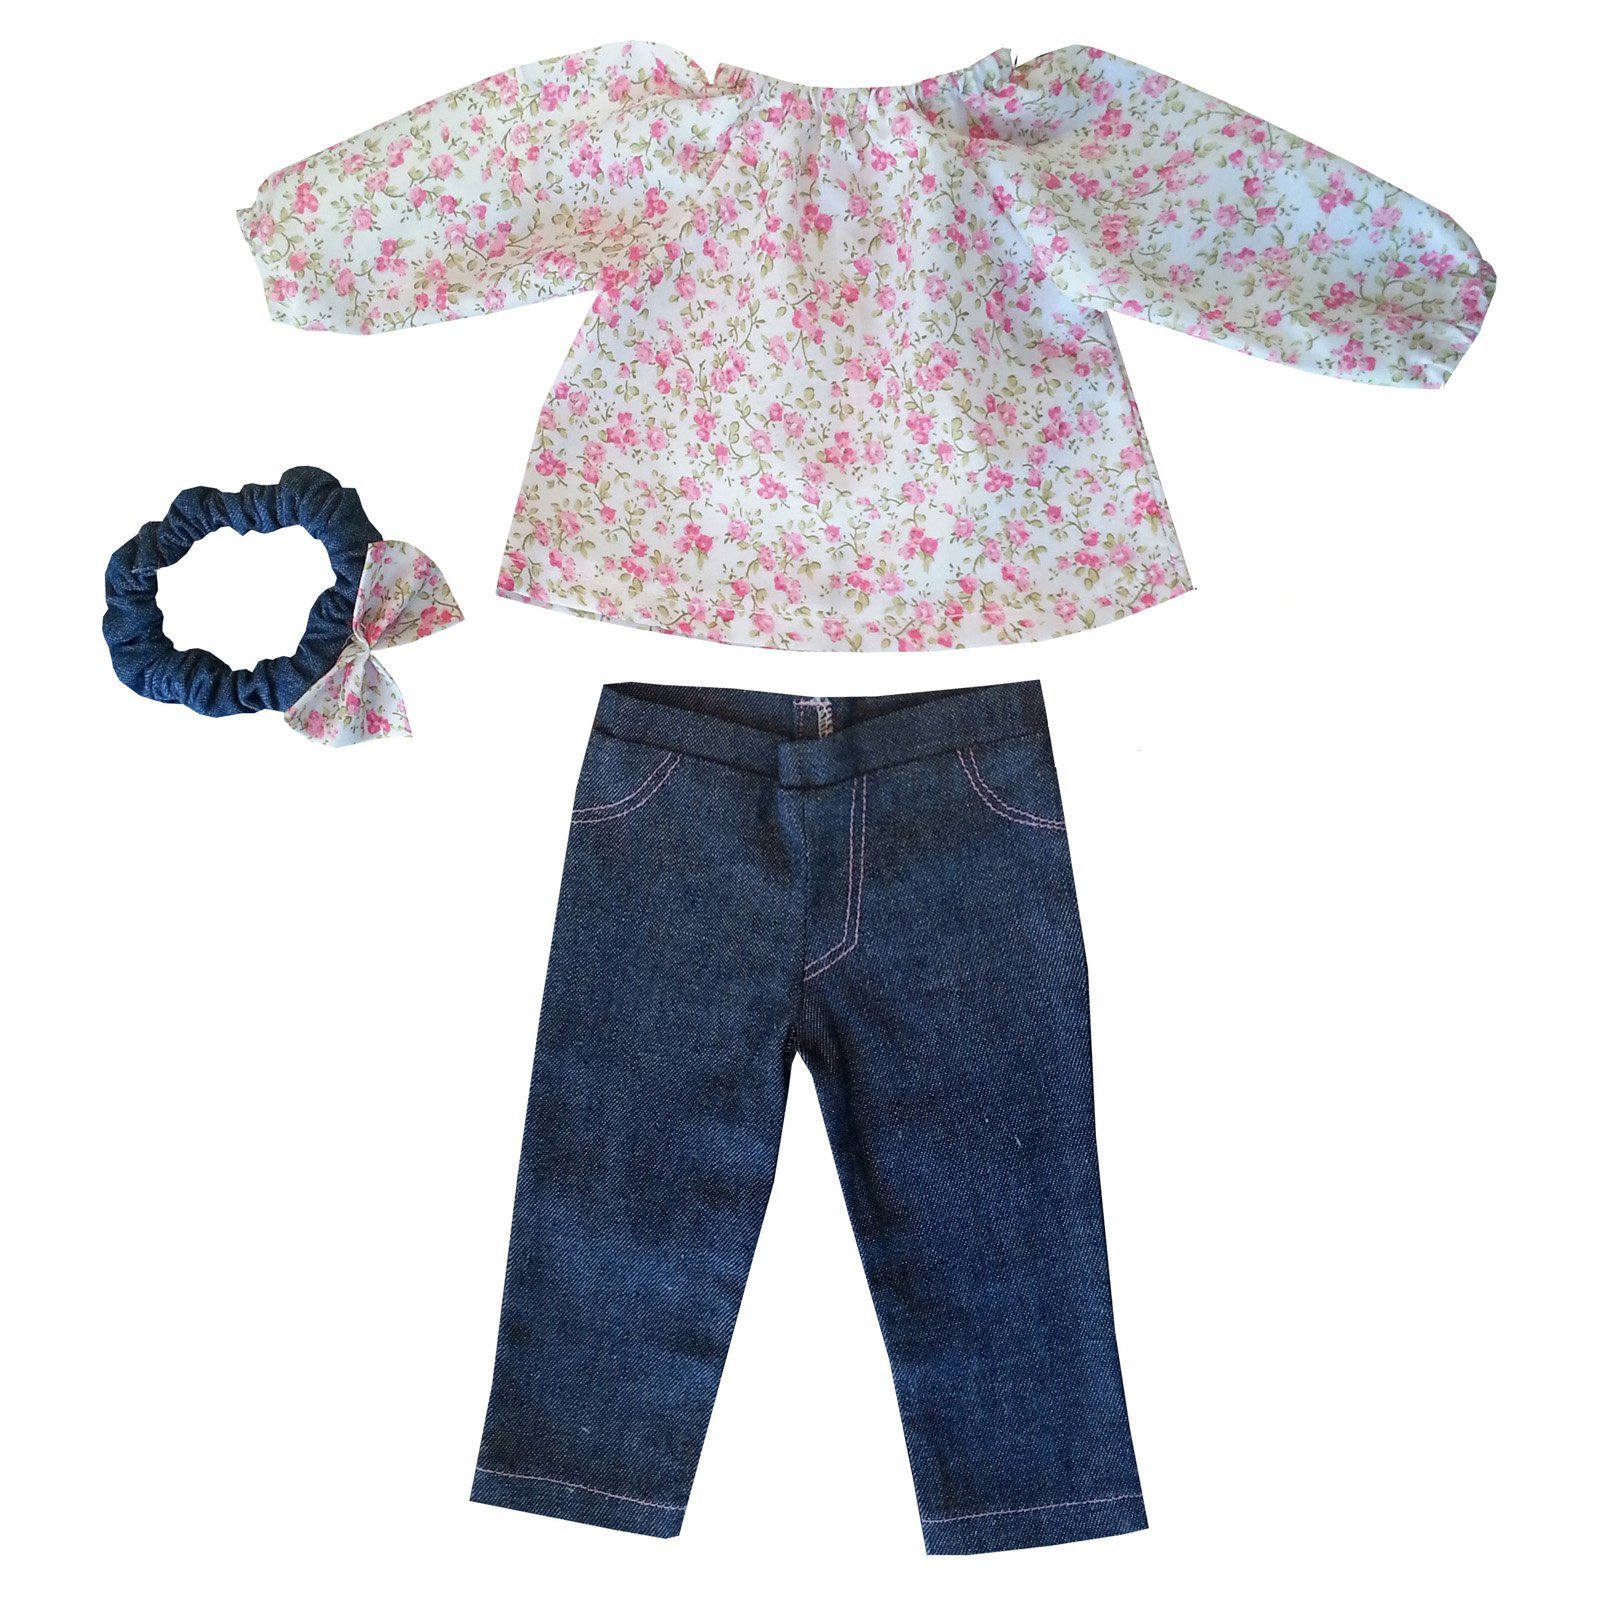 Molly P. Khloe 18 in. Doll Outfit